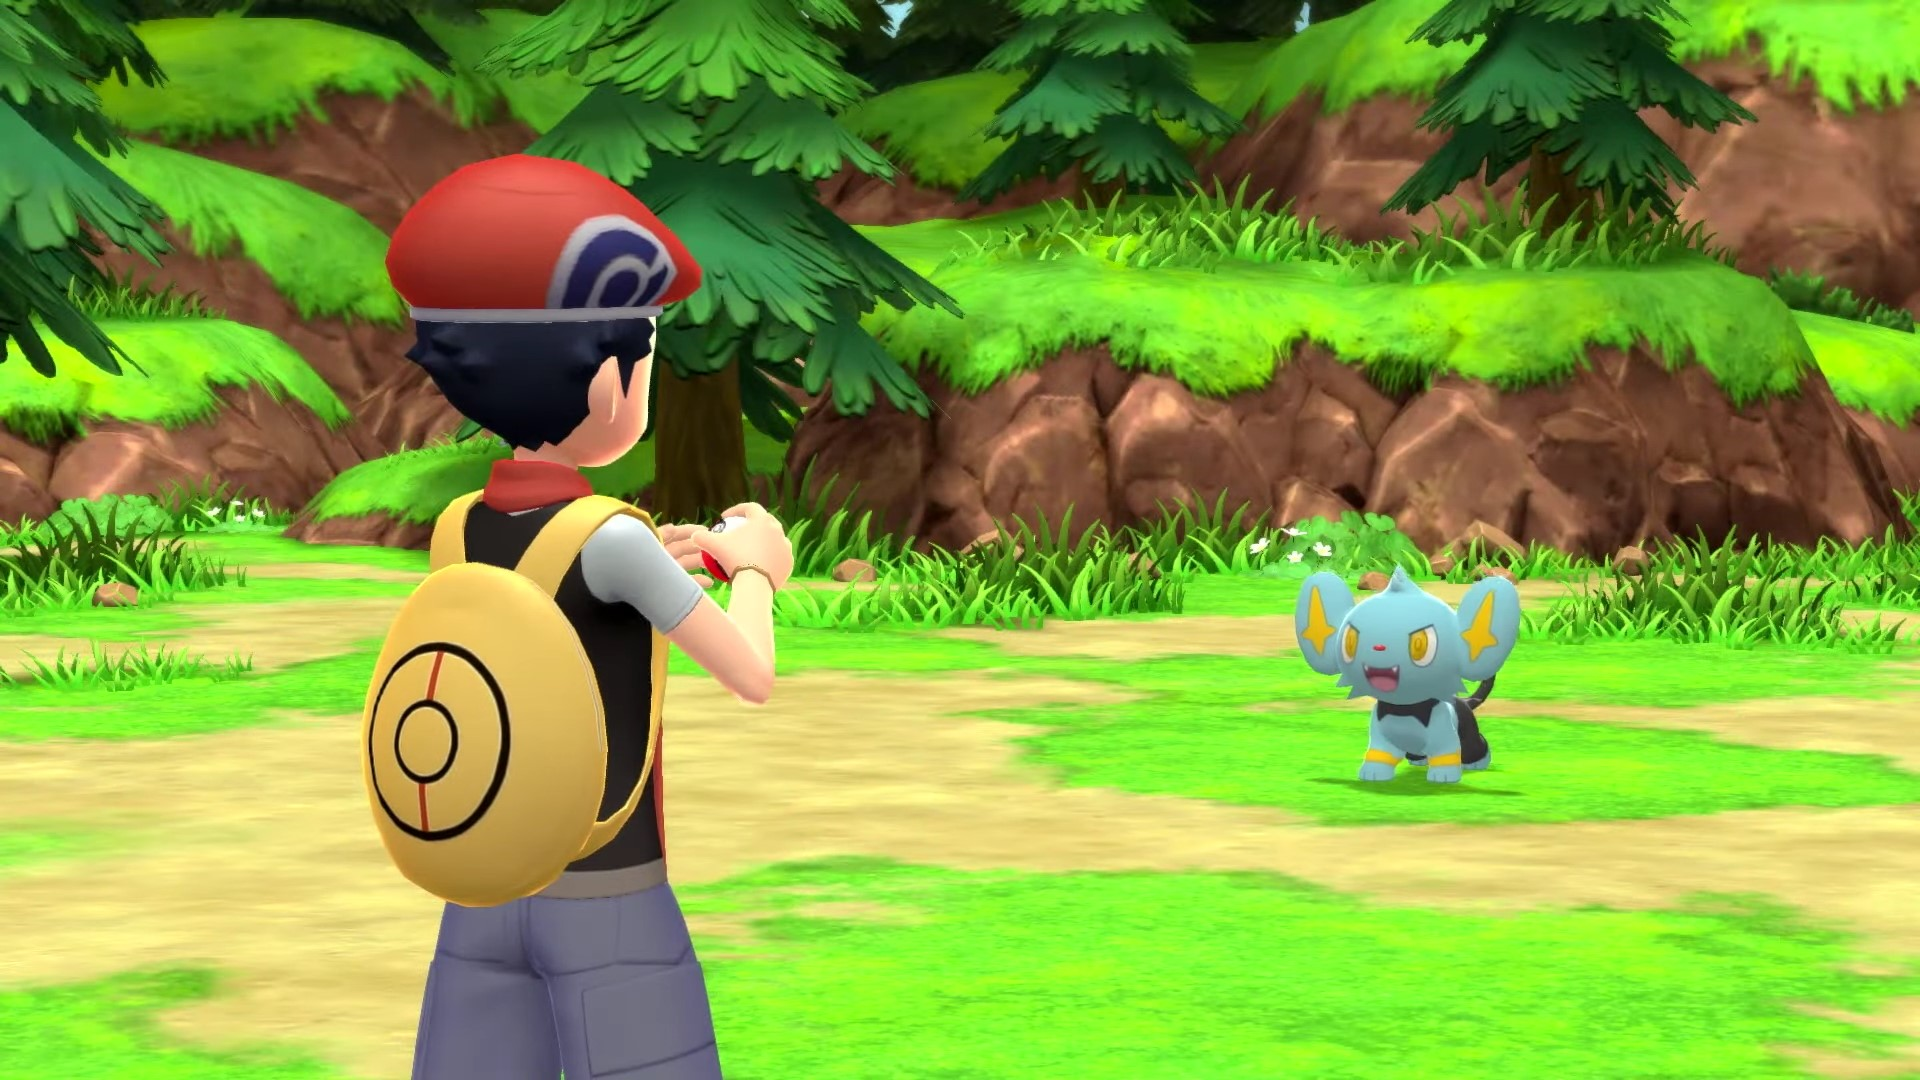 Pokémon Diamond and Pearl are getting chibi remakes for Nintendo Switch